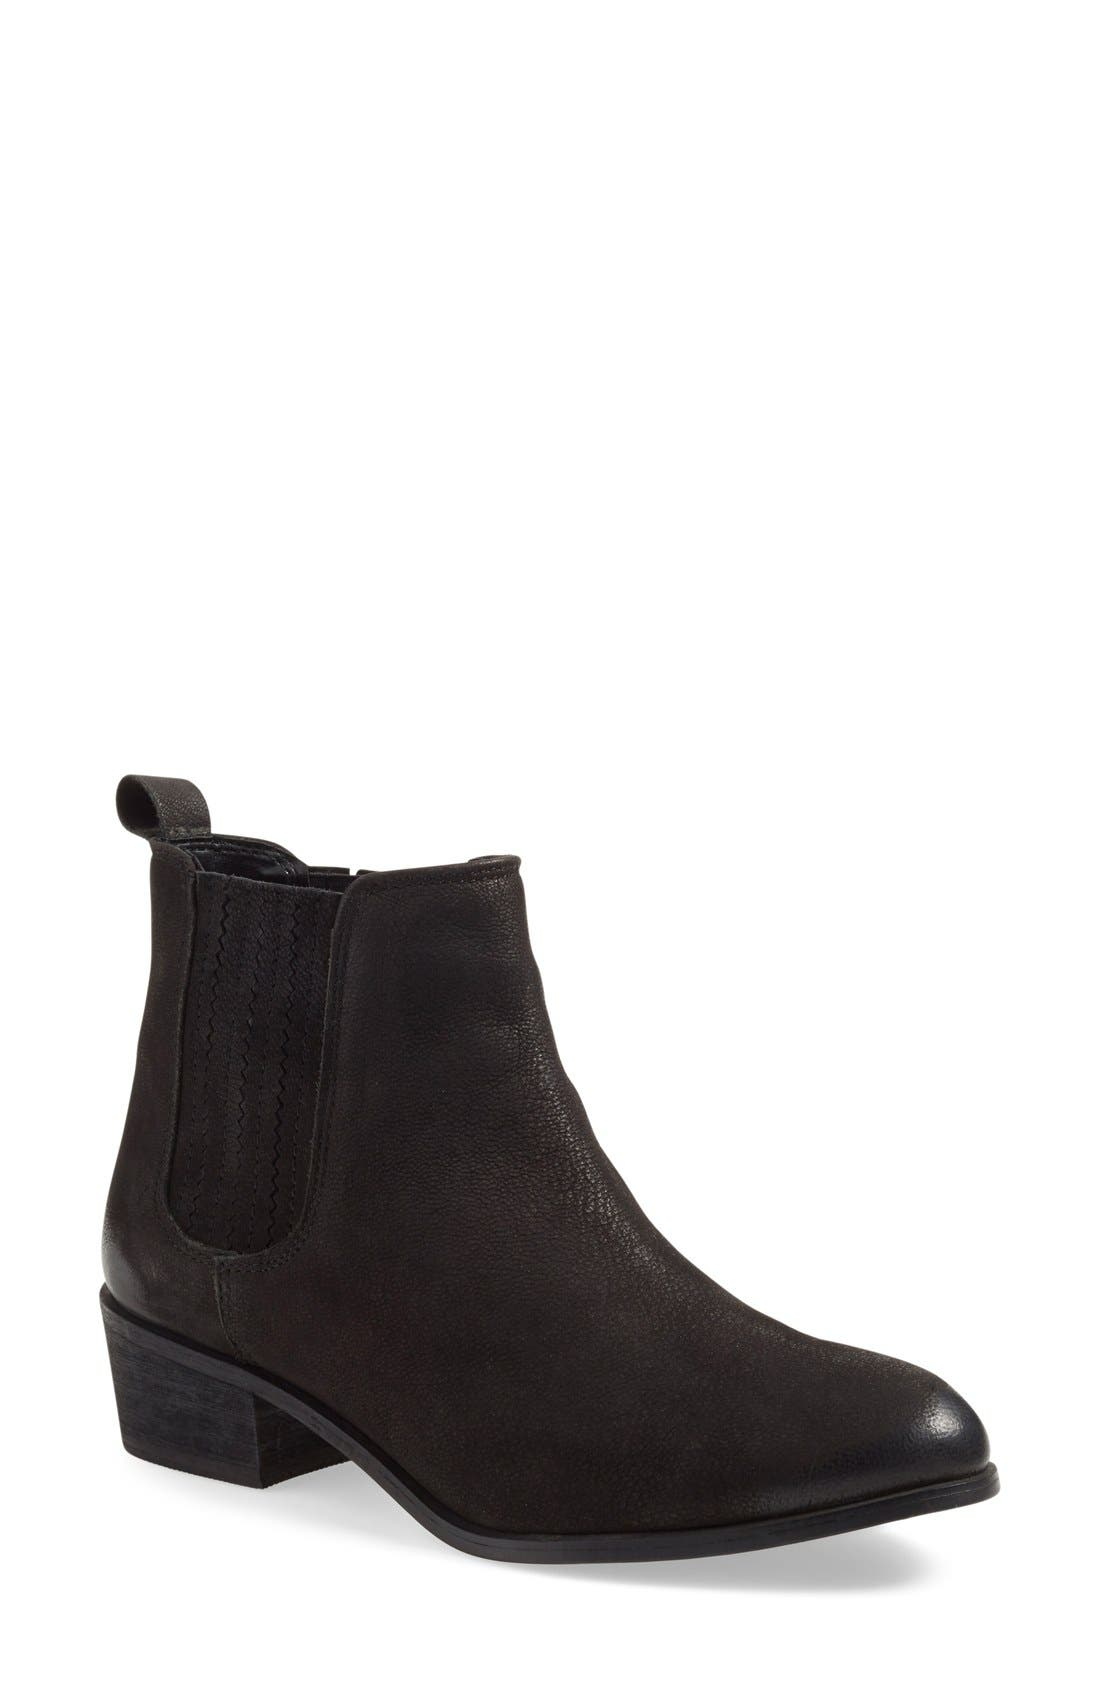 'Nylie' Chelsea Boot, Main, color, 005